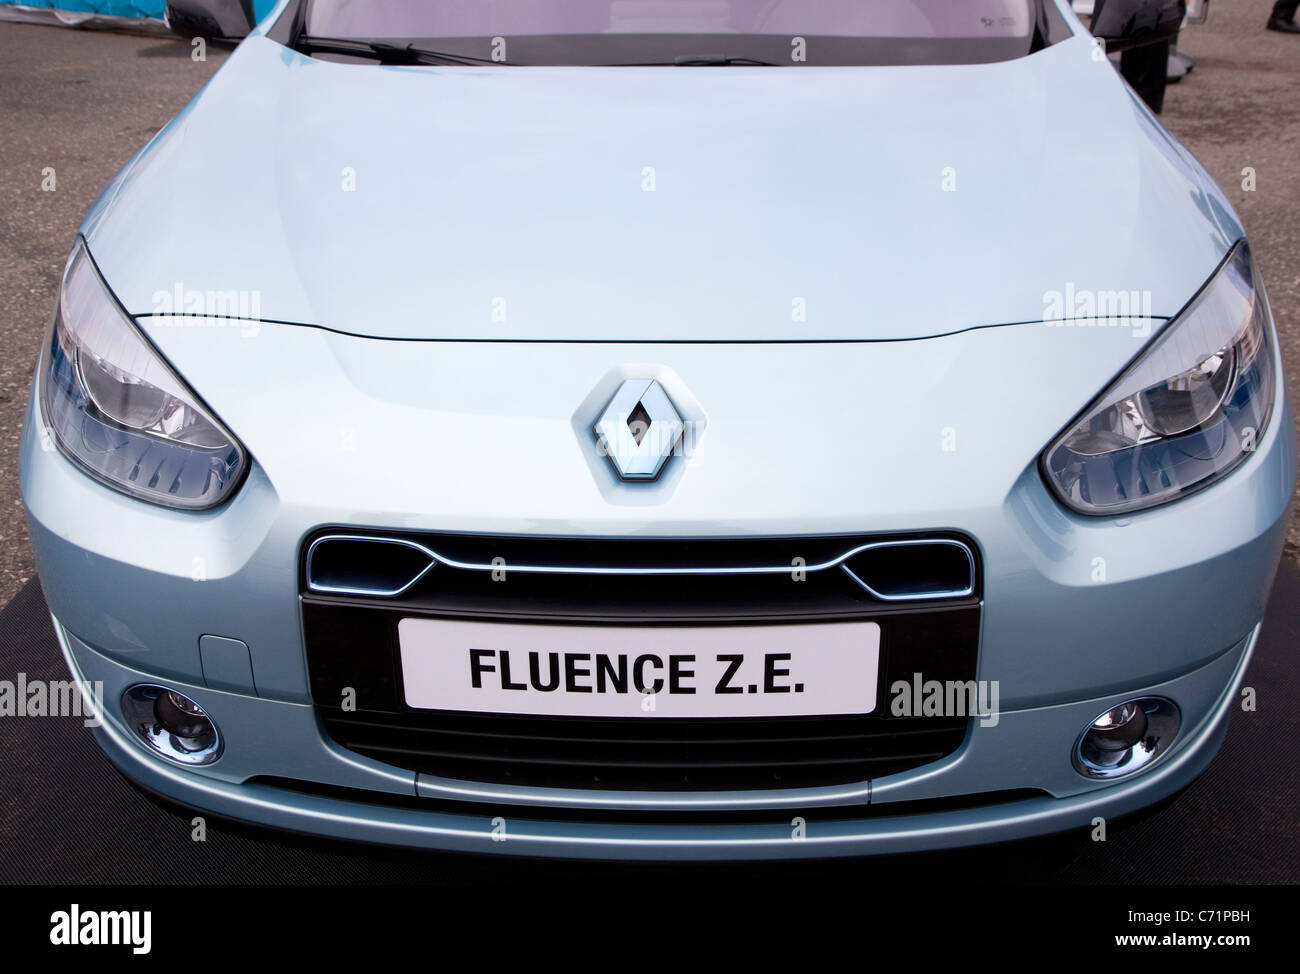 Ecovelocity motor festival London - Renault Fluence Z E zero emissions car - Stock Image